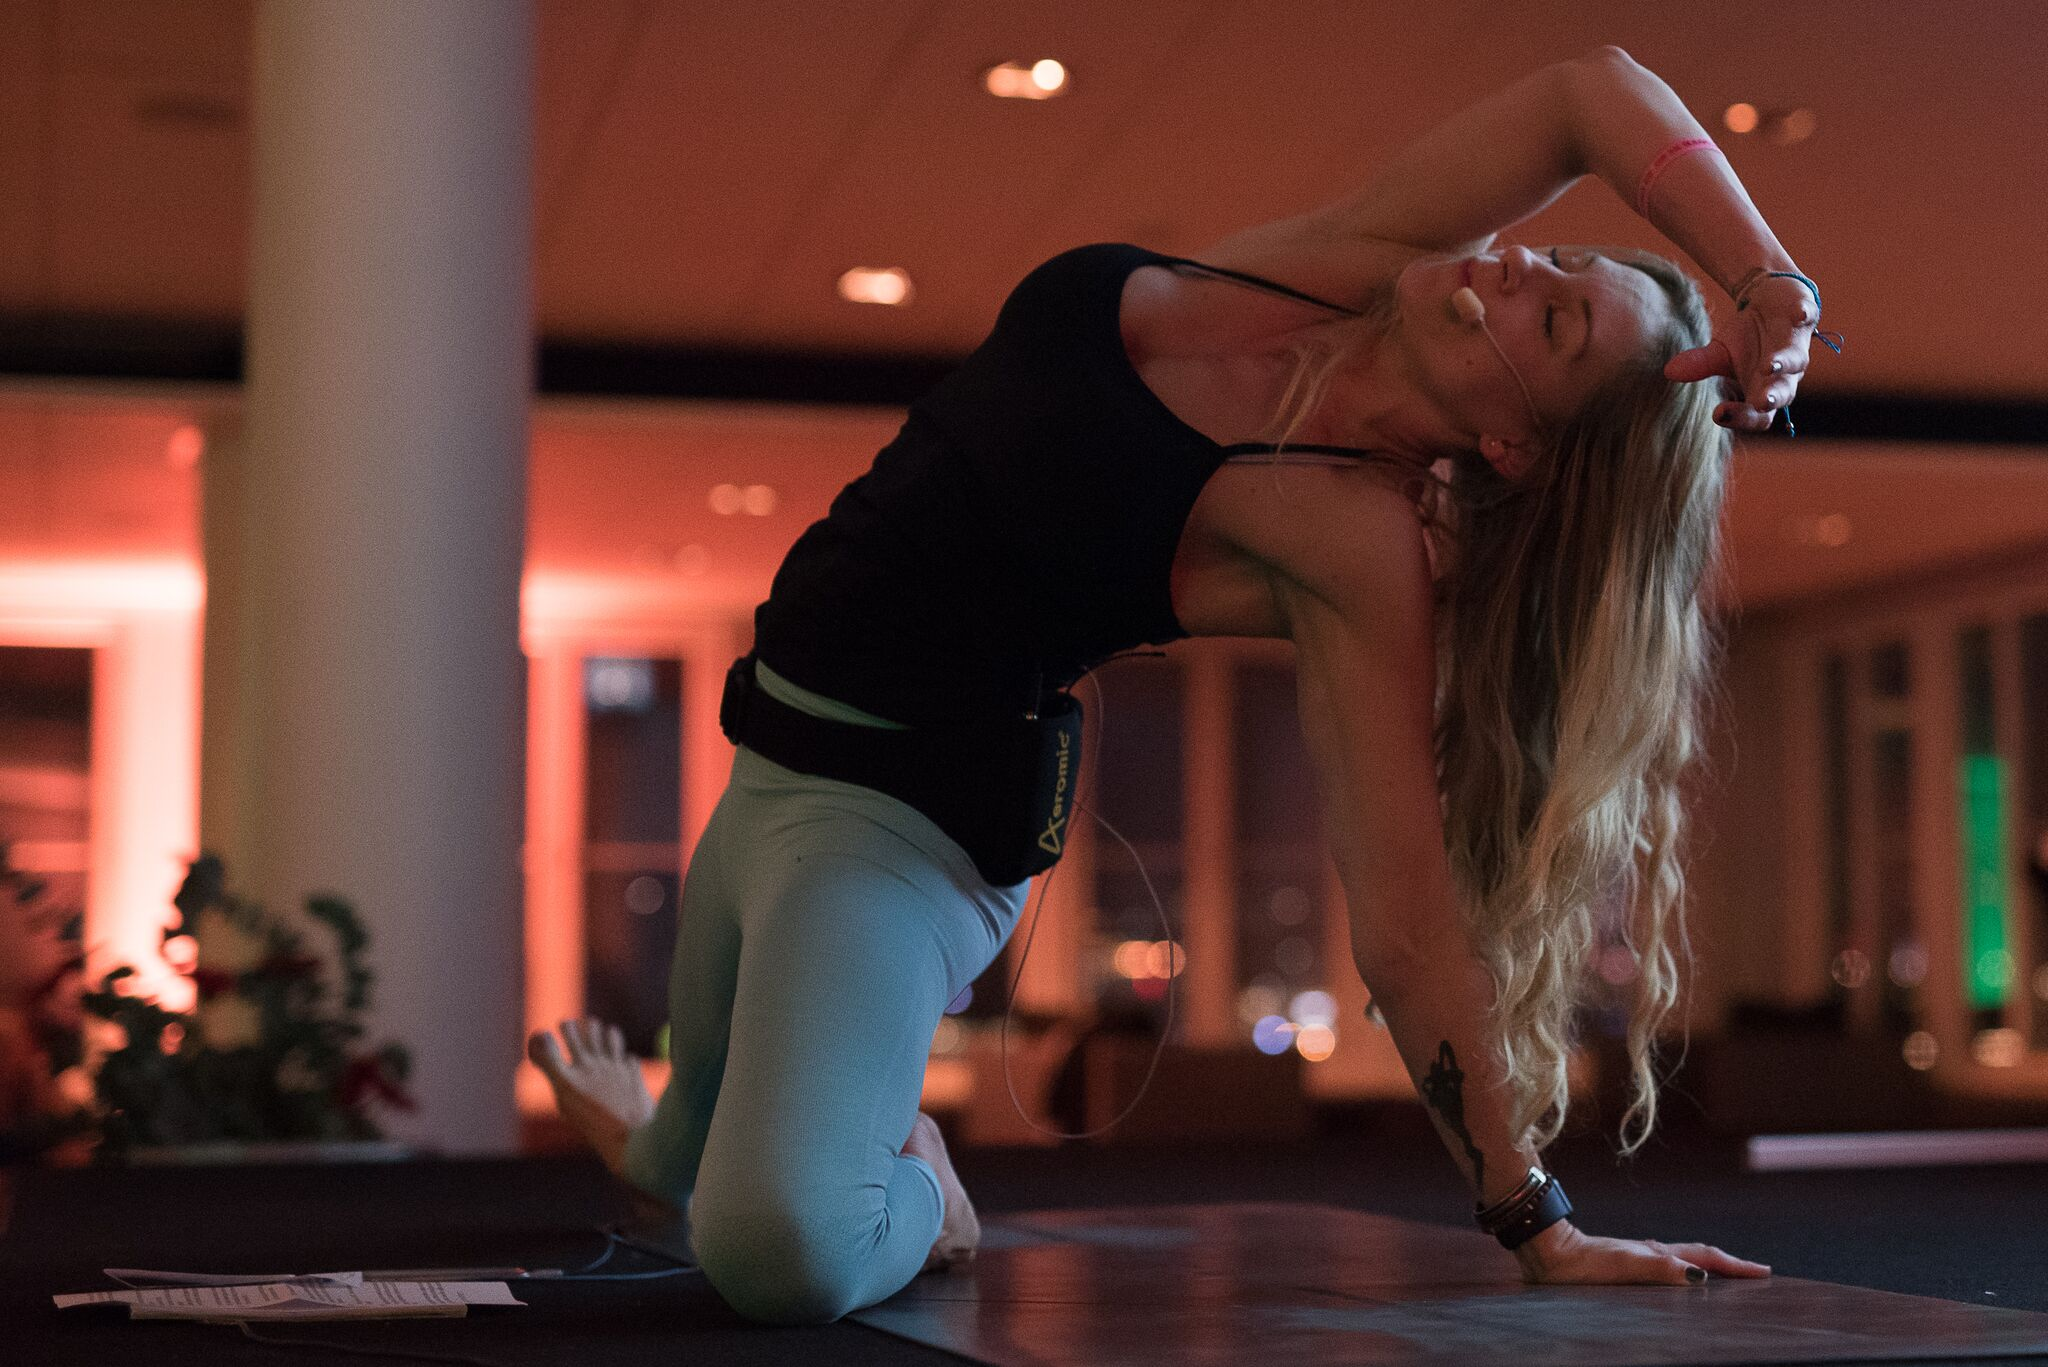 yogagames_stockholm2017-893_preview.jpeg